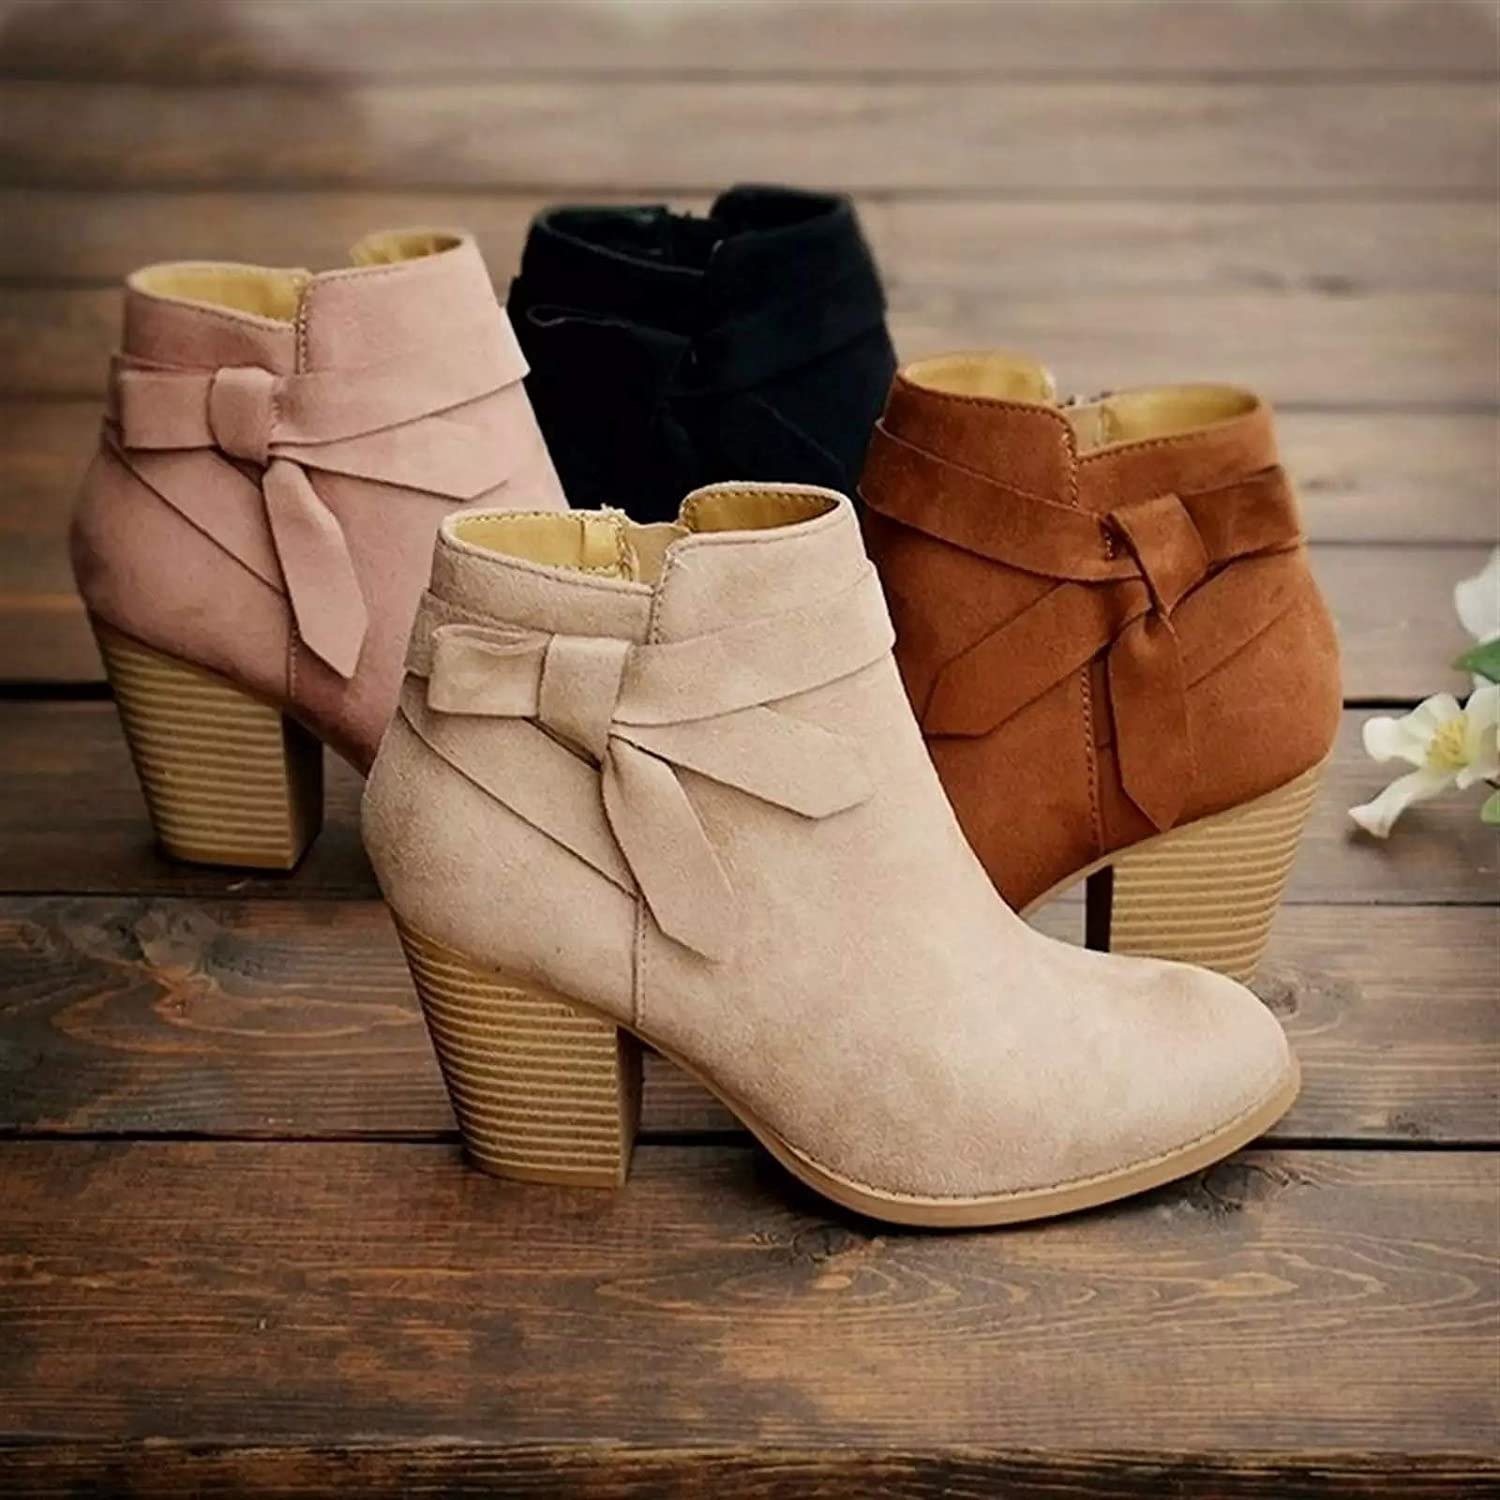 The booties with decorative knots at the ankle in tan, pink, brown, and black